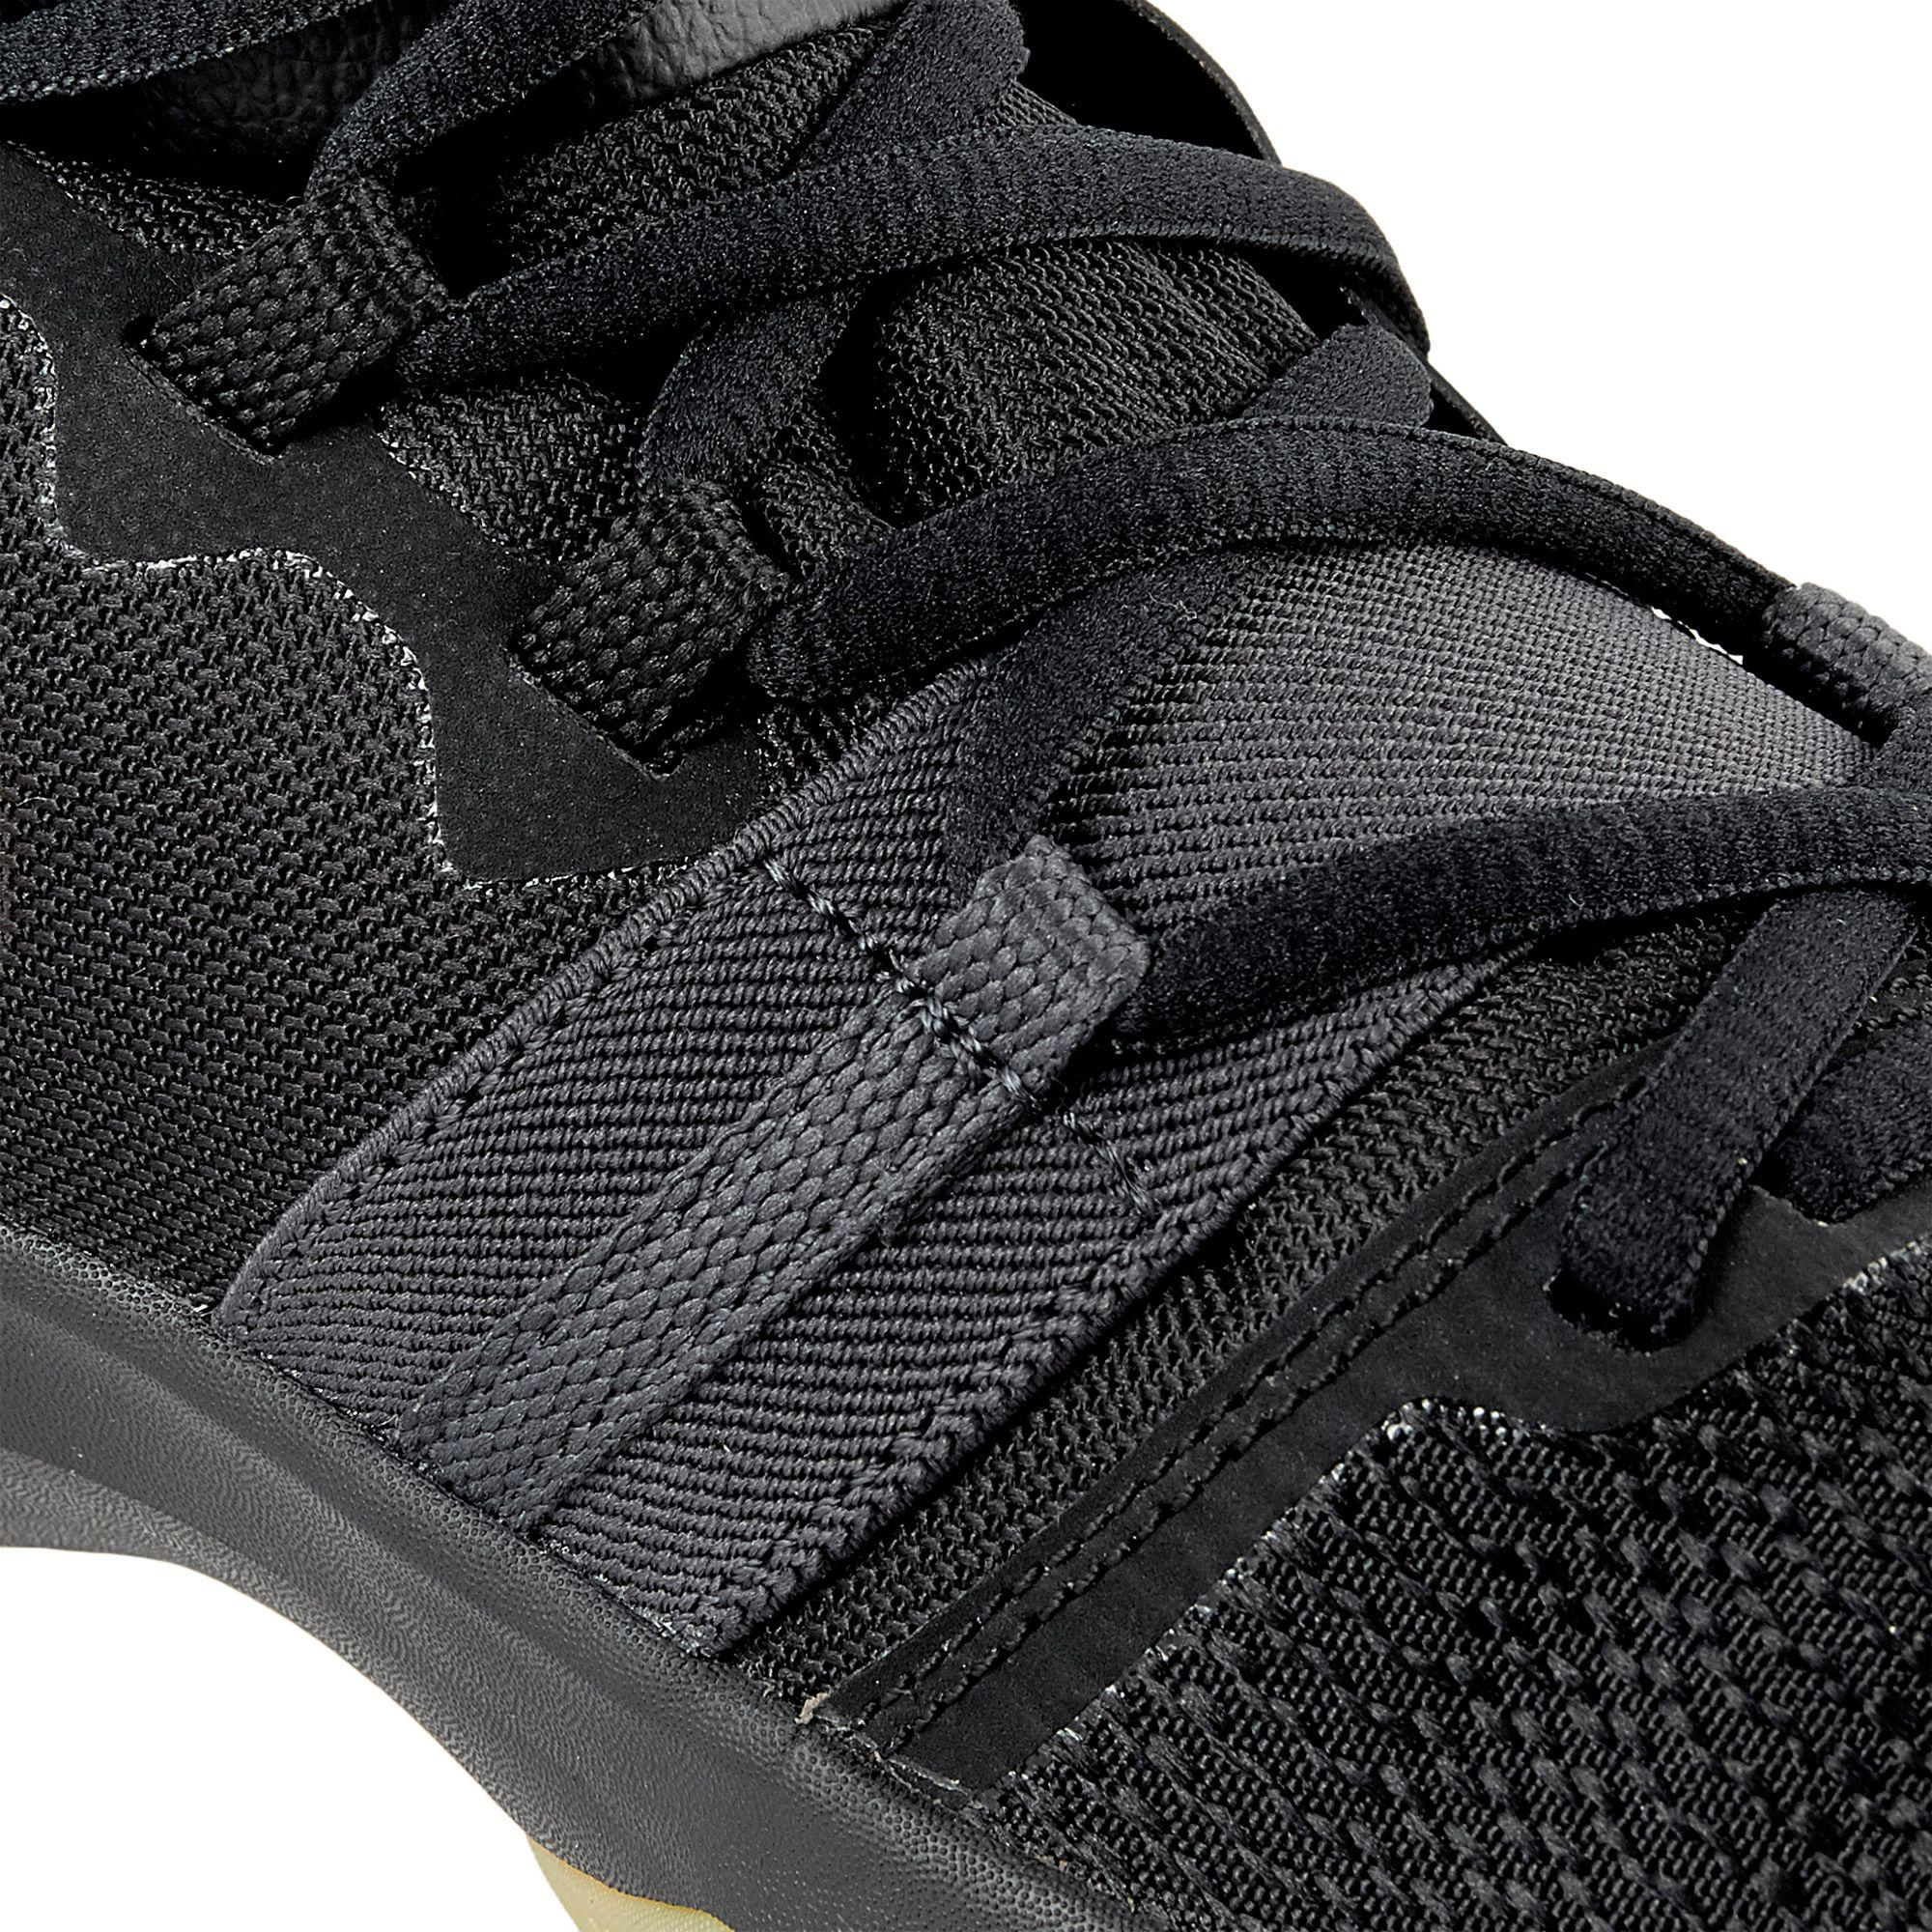 6f951004150f Lyst - Nike Kyrie Flytrap Basketball Shoes in Black for Men